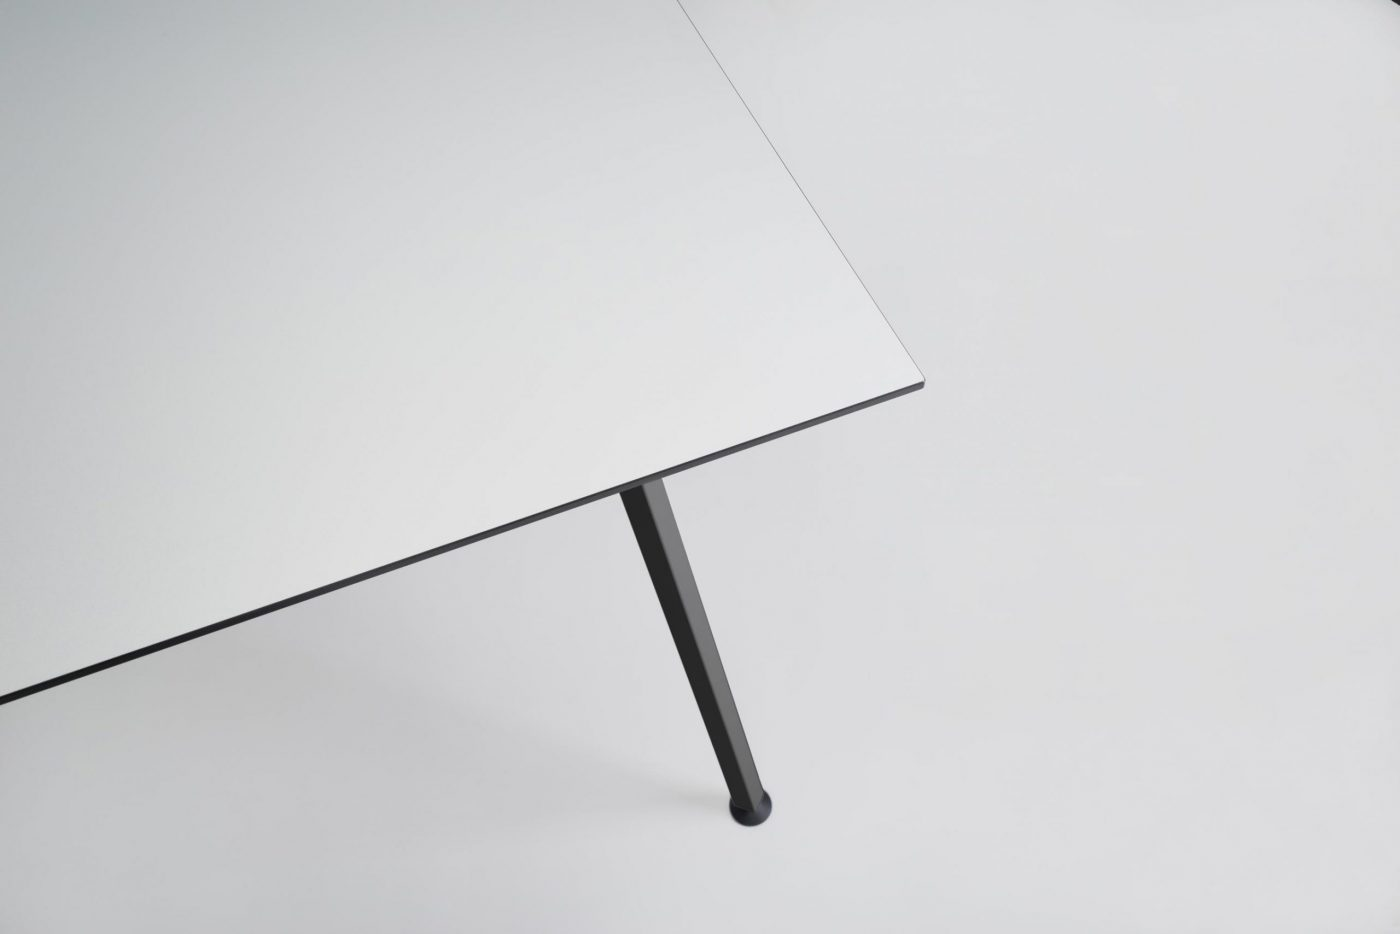 03 EASY TABLE SQUARE BLACK SCHWARZ ROSA GRUEN WEISS WHITE ROSE GREEN HPL LINOLEUM TISCH MODERN MYKILOS scaled